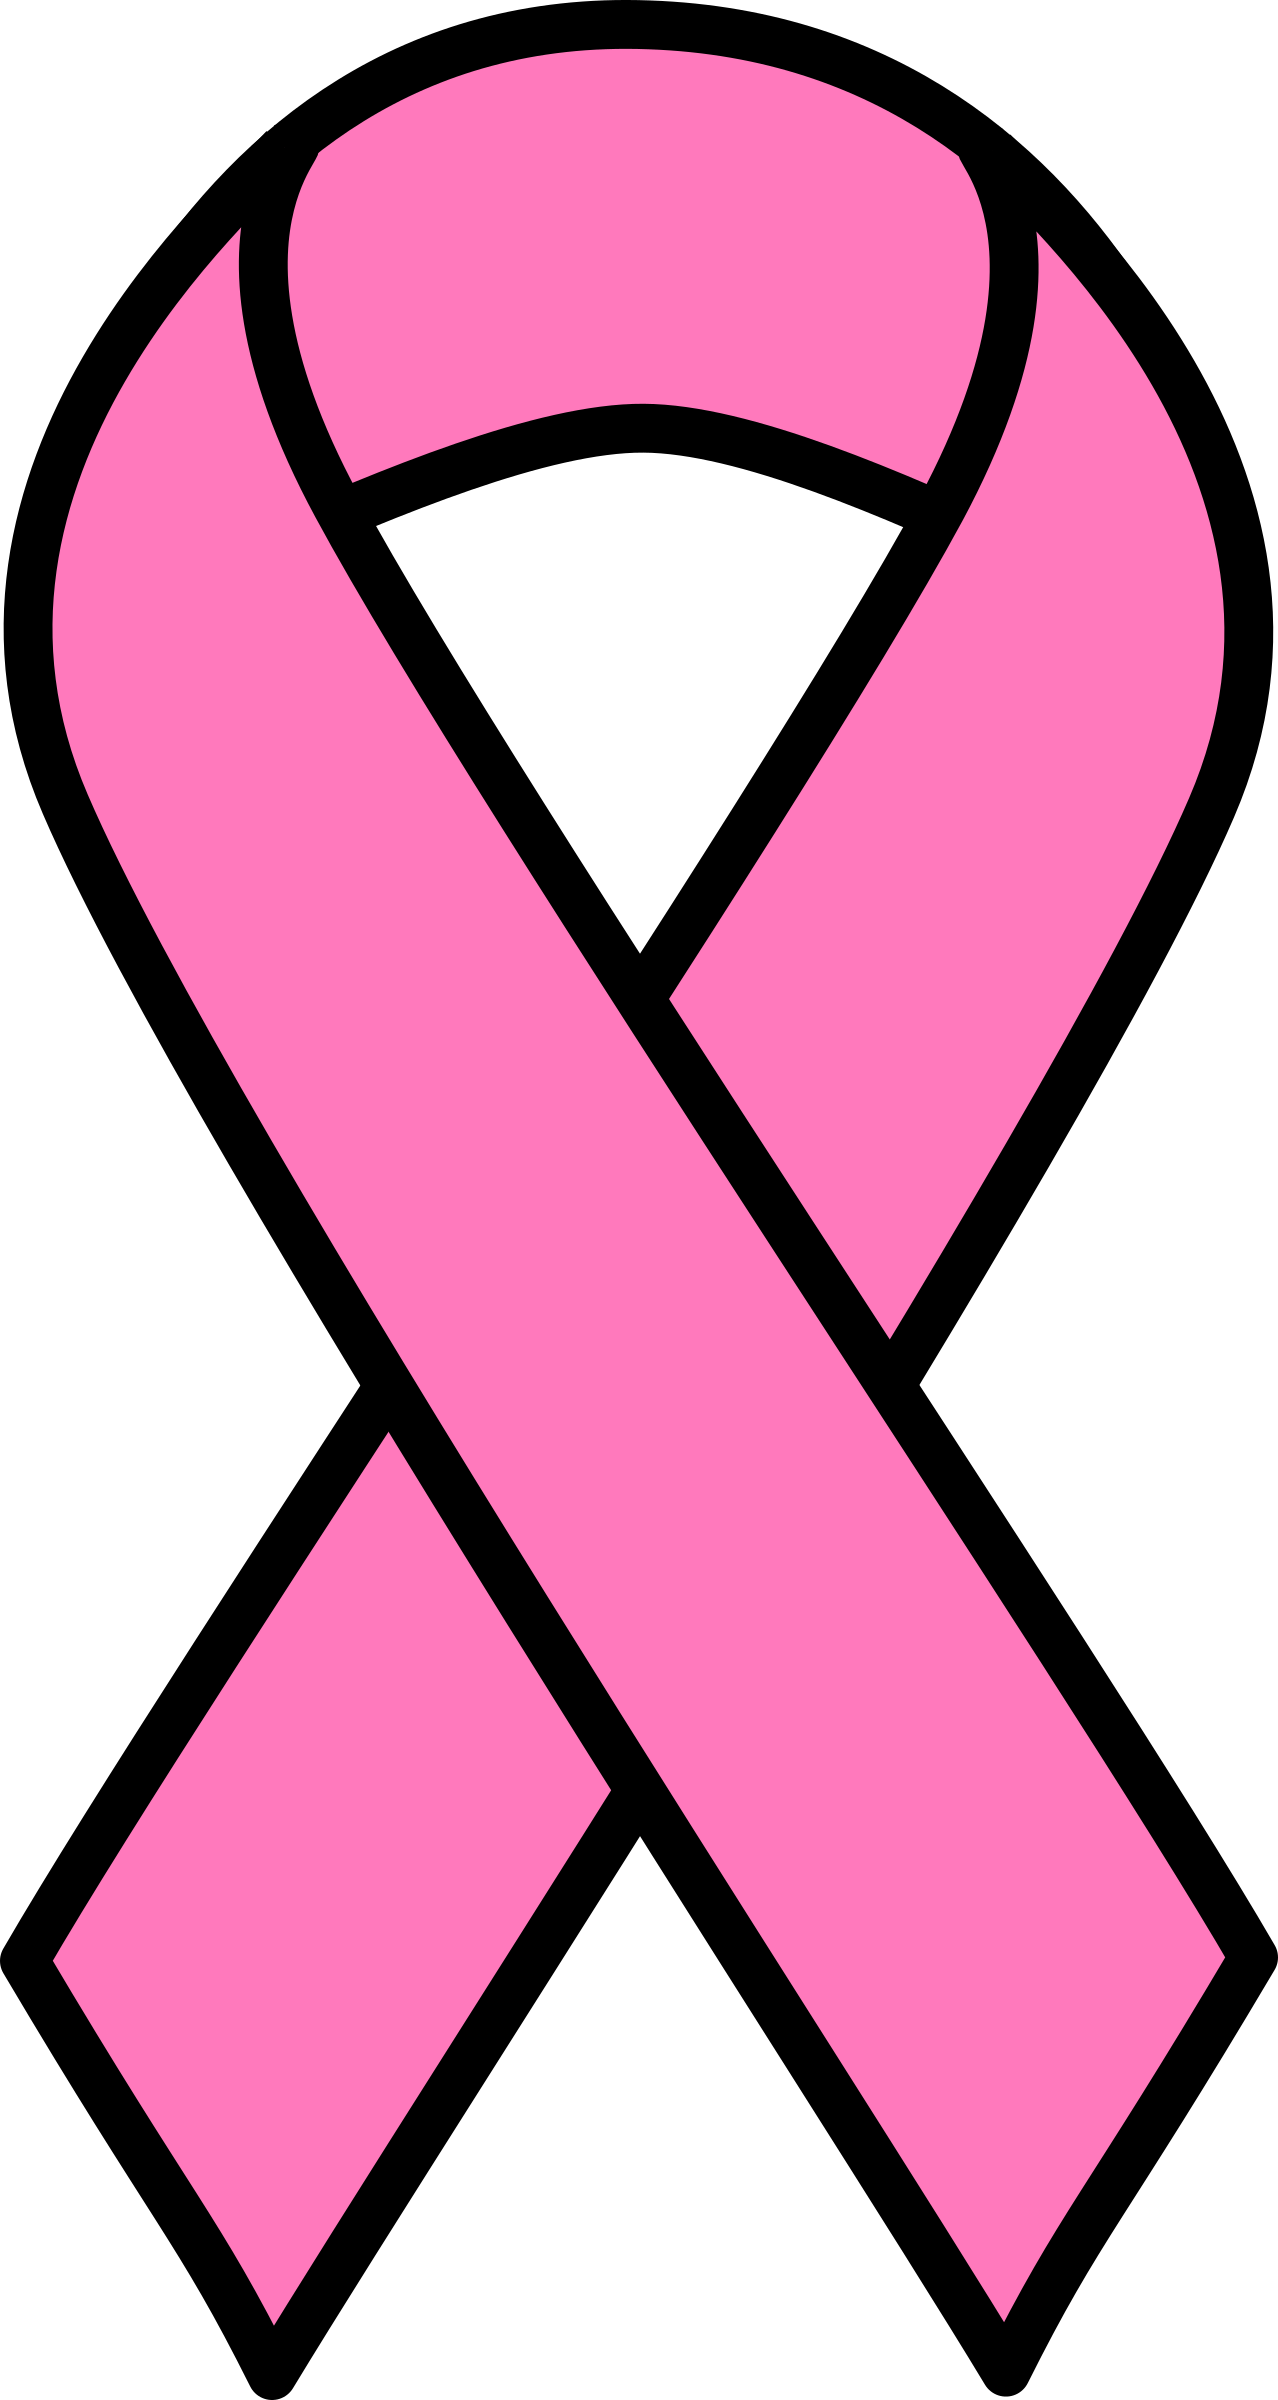 Image breast cancer ribbon. Dallas cowboys clipart pink